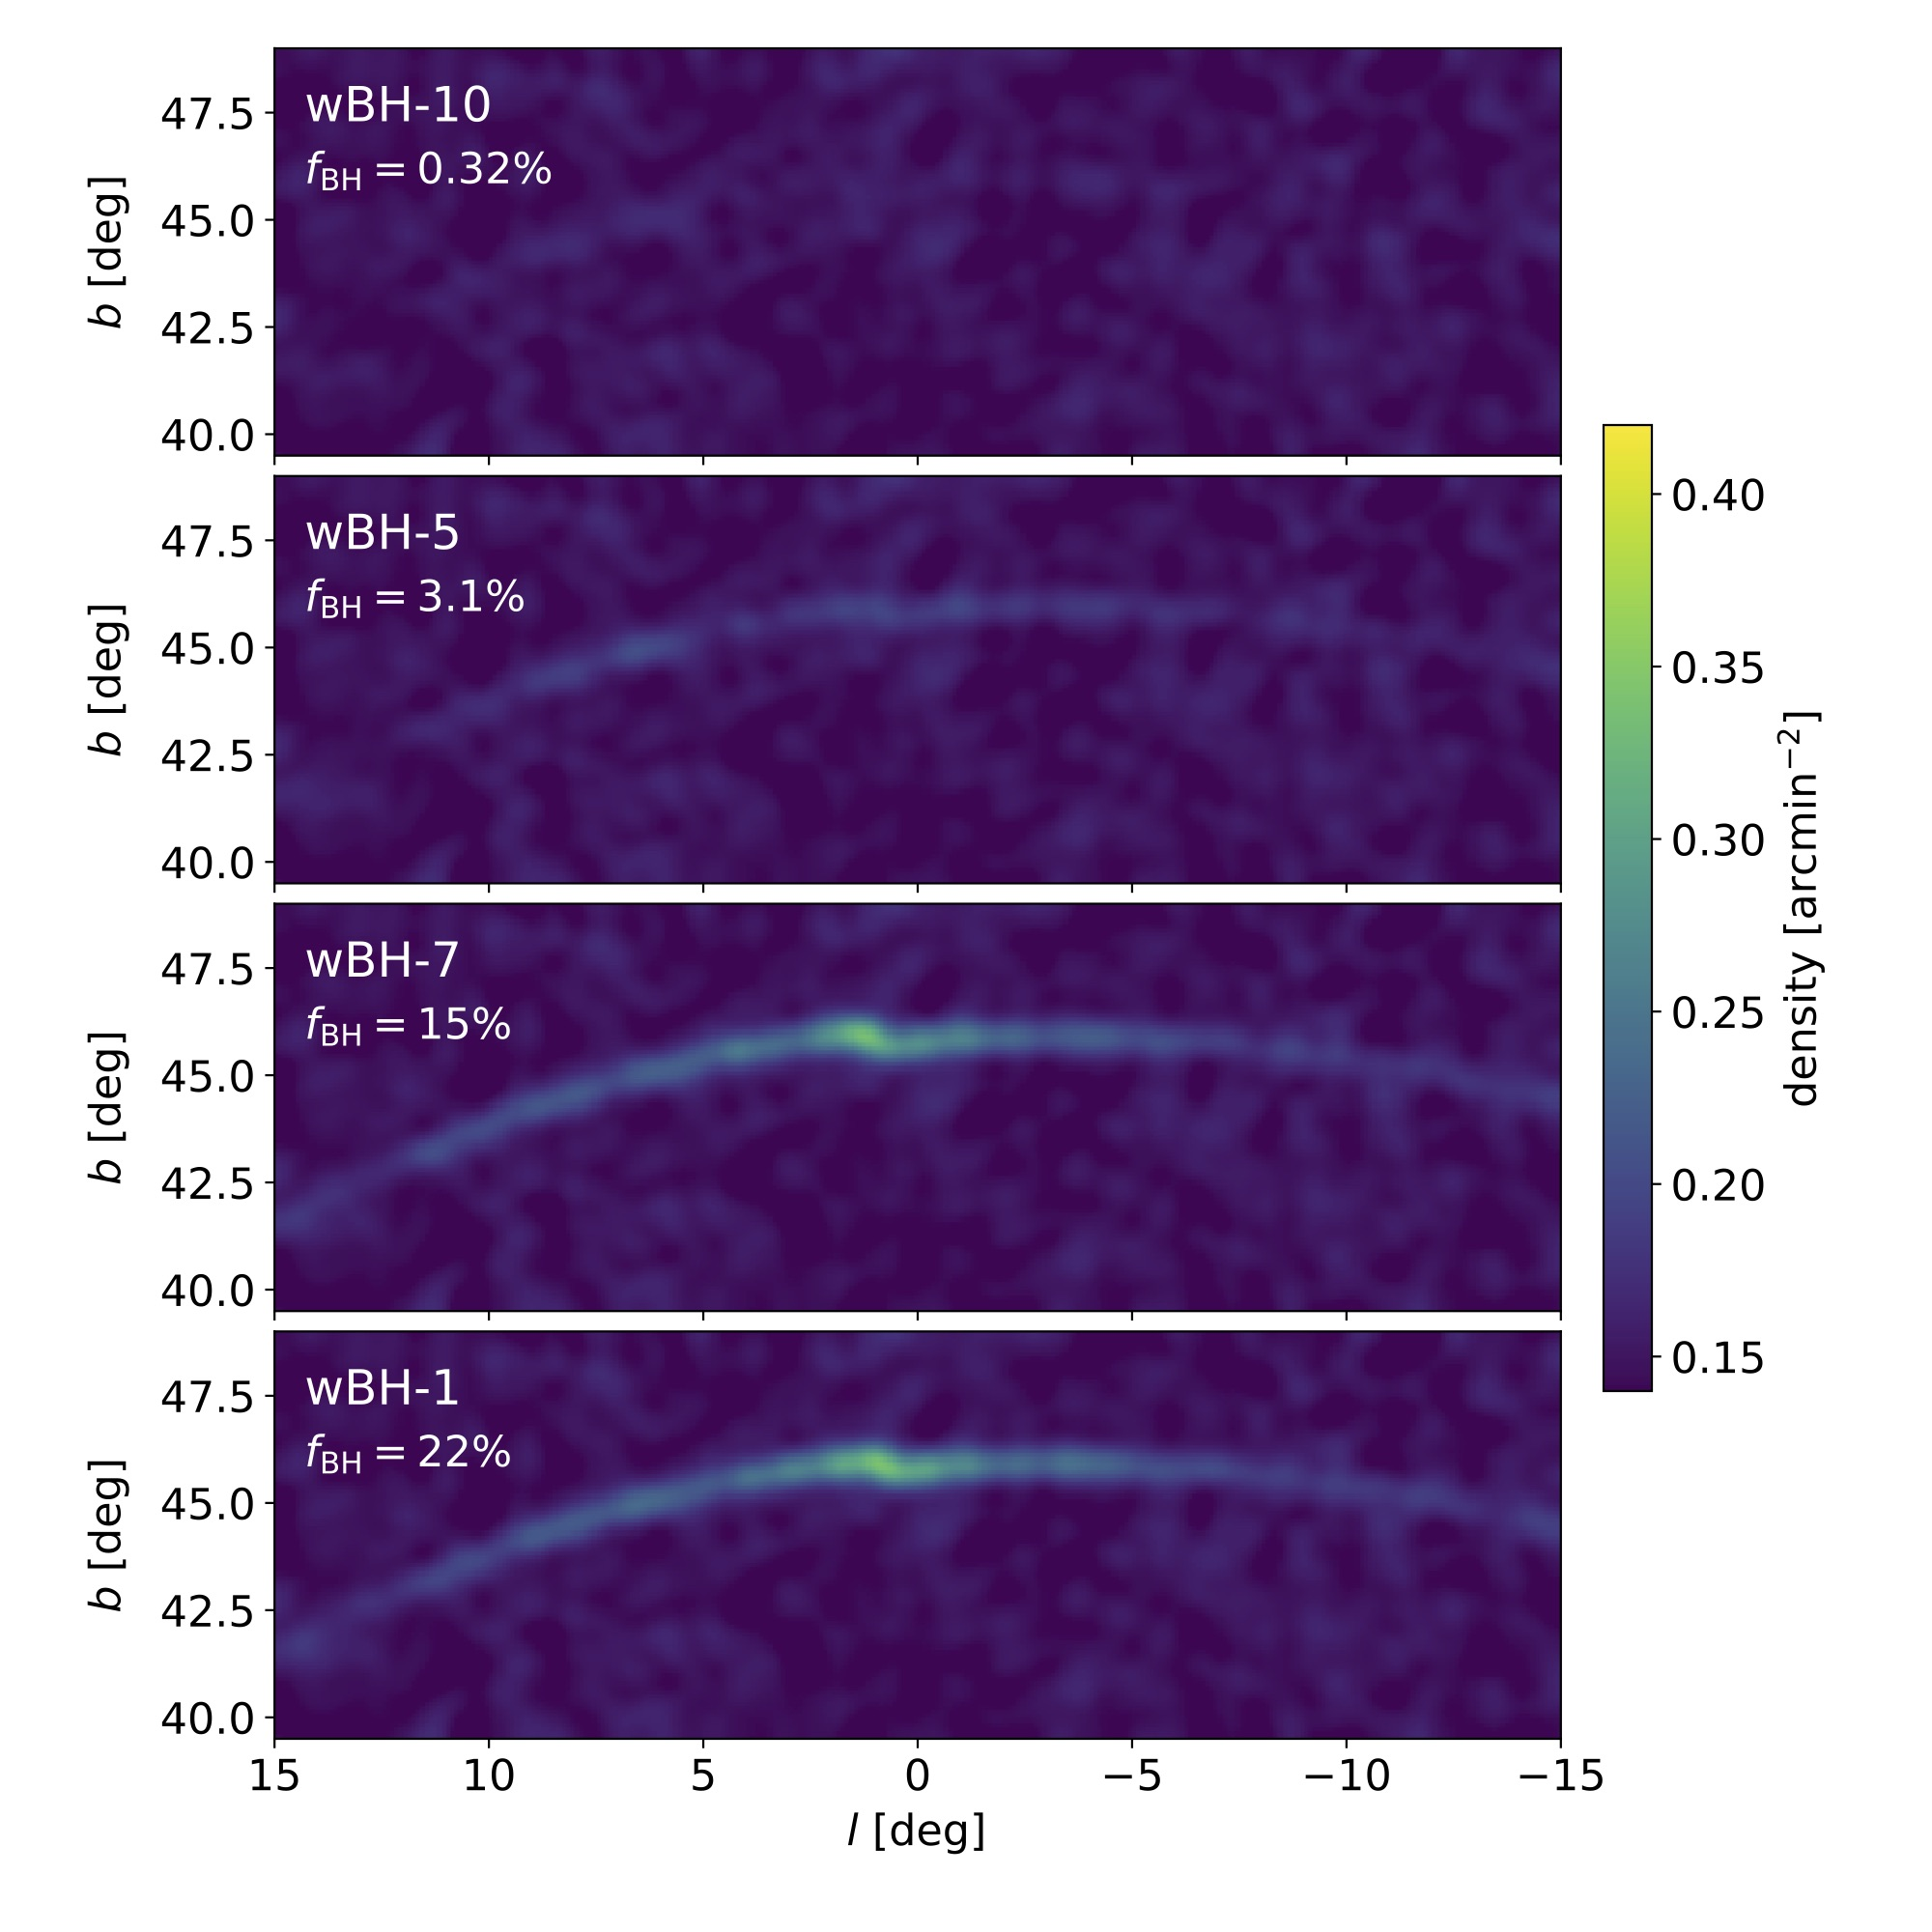 Fig 2. Density of the Pal 5 stellar stream with different initial black hole fractions (f_BH). Models above black hole fraction of 10% have prominent tidal tails, resulting from the GC losing more stars. Reproduced from Fig 4 of the paper.